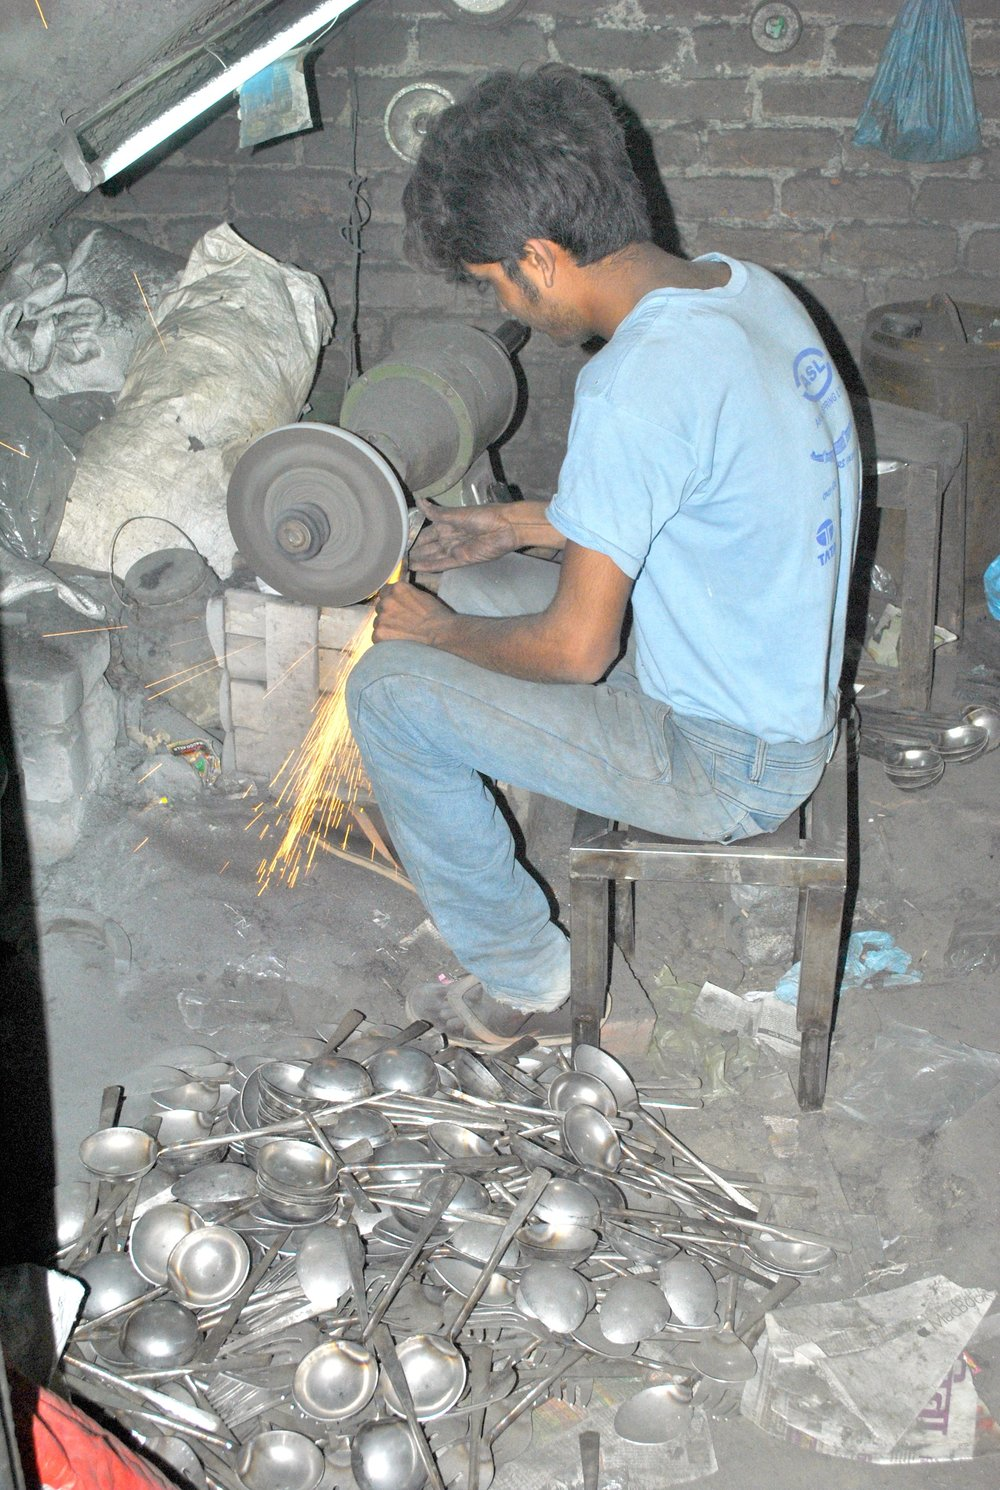 Bablu hand forges ladels for Kazmi Emporium, Moradabad.